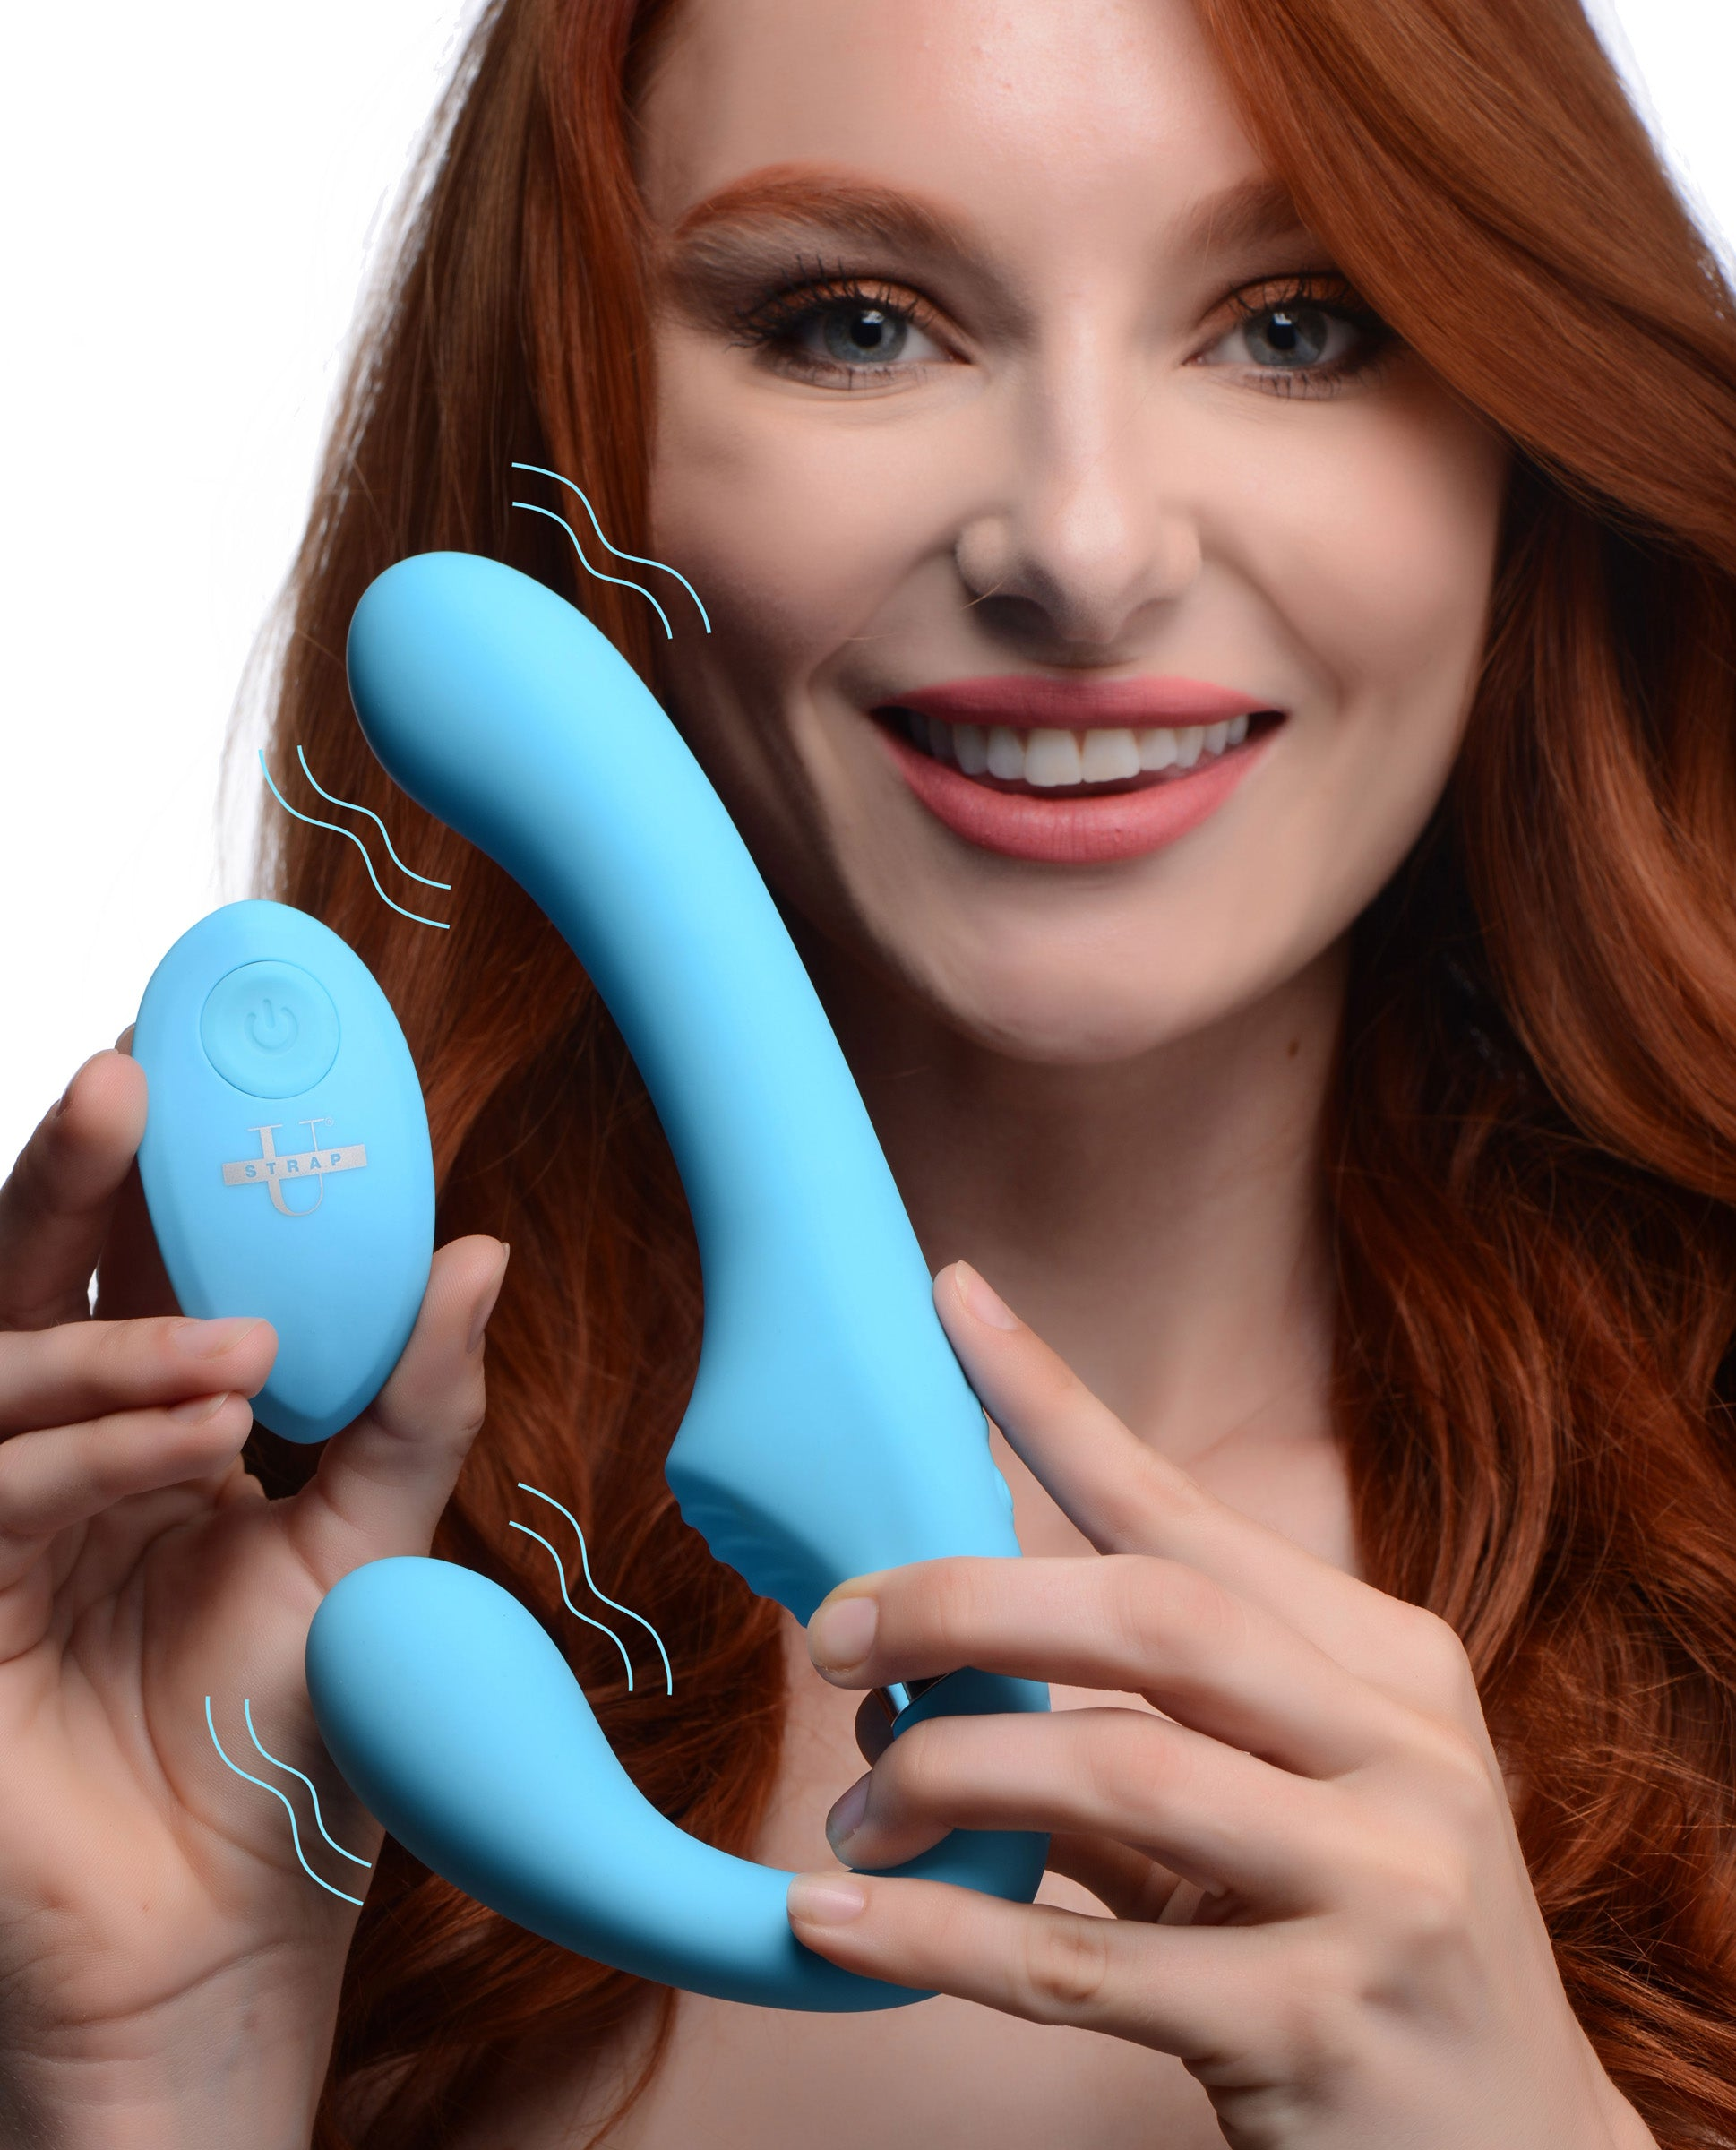 10x Vibrating Silicone Strapless Strap-on - Blue